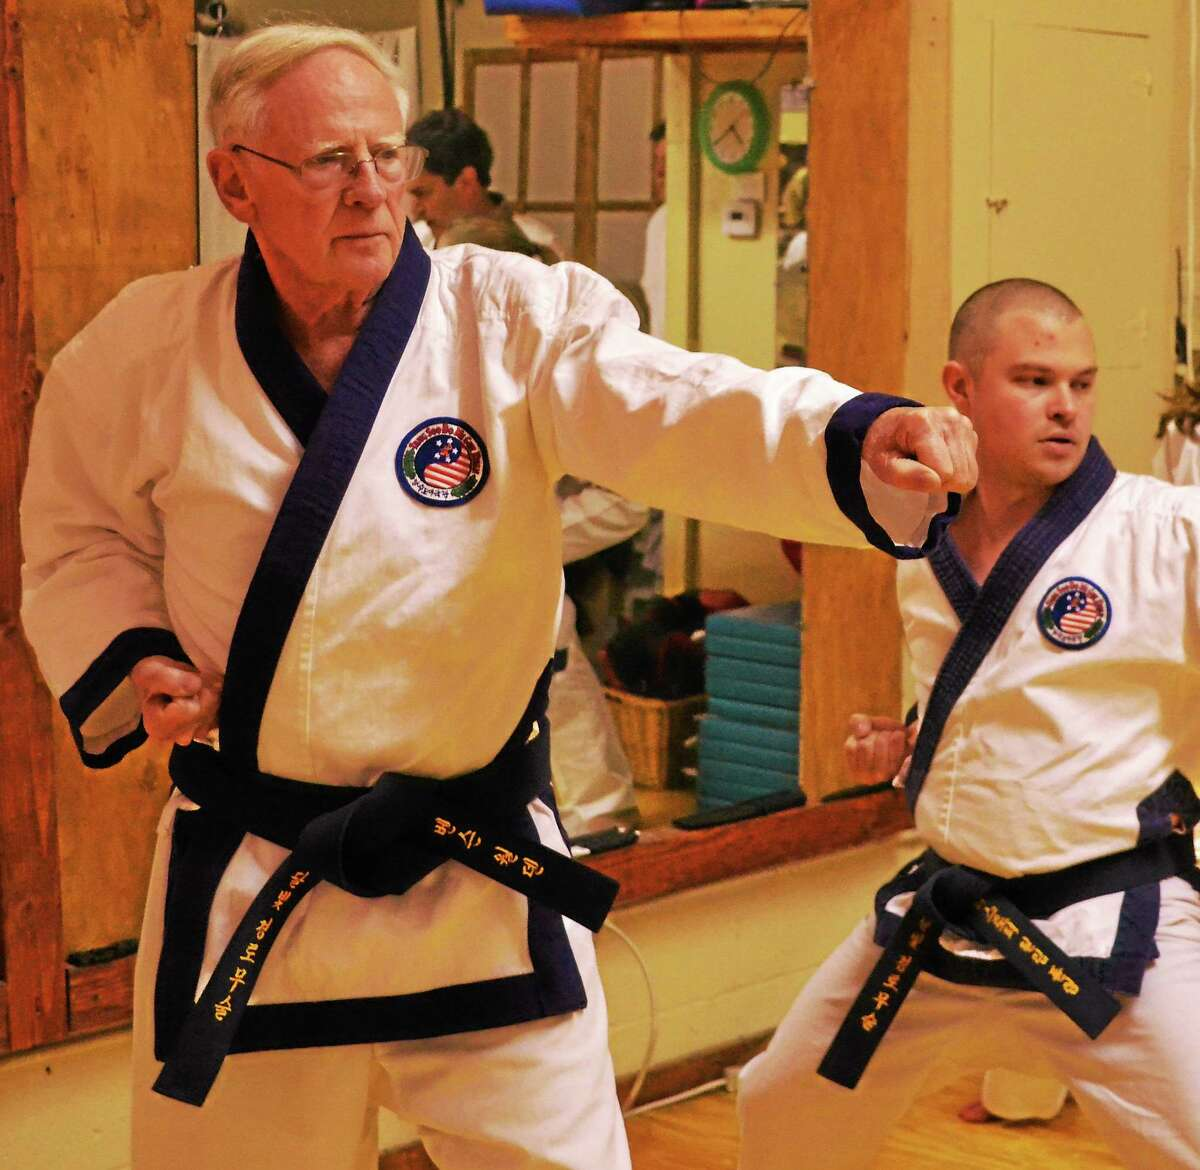 George Benson Werthan practices Tang Soo Do at Moonlit Path Martial Arts in Branford.